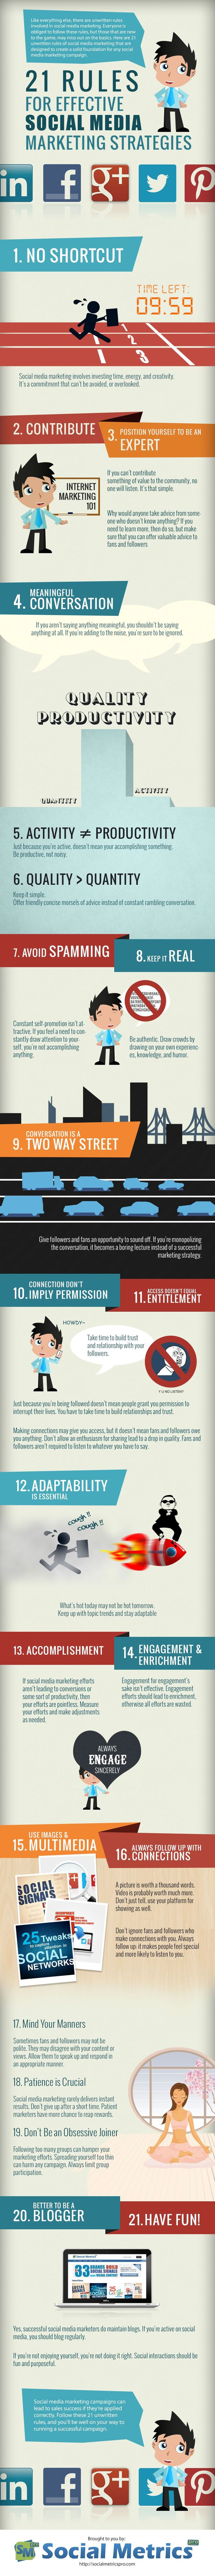 21 Rules For Effective Social Media Marketing by Social Metrics #socialmedia #infographic